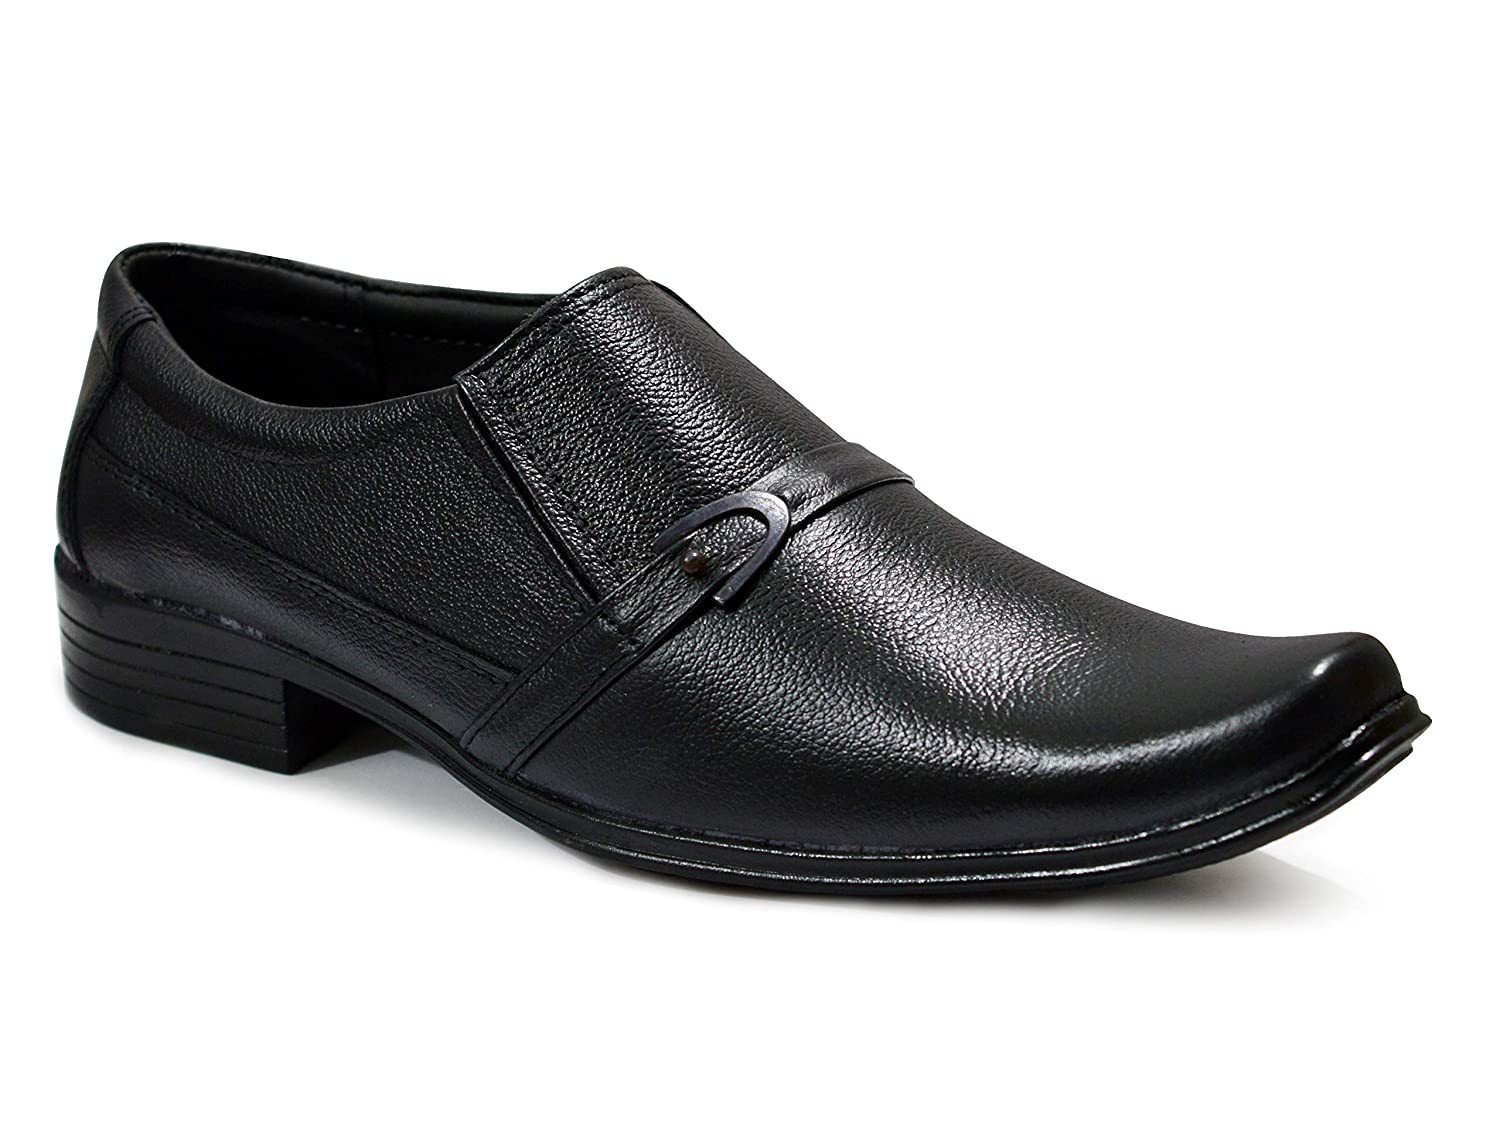 2adeaa73371 feetway Genuine Leather Plain Formal Shoes for Men Without Lace Black  Colour  Buy Online at Low Prices in India - Amazon.in